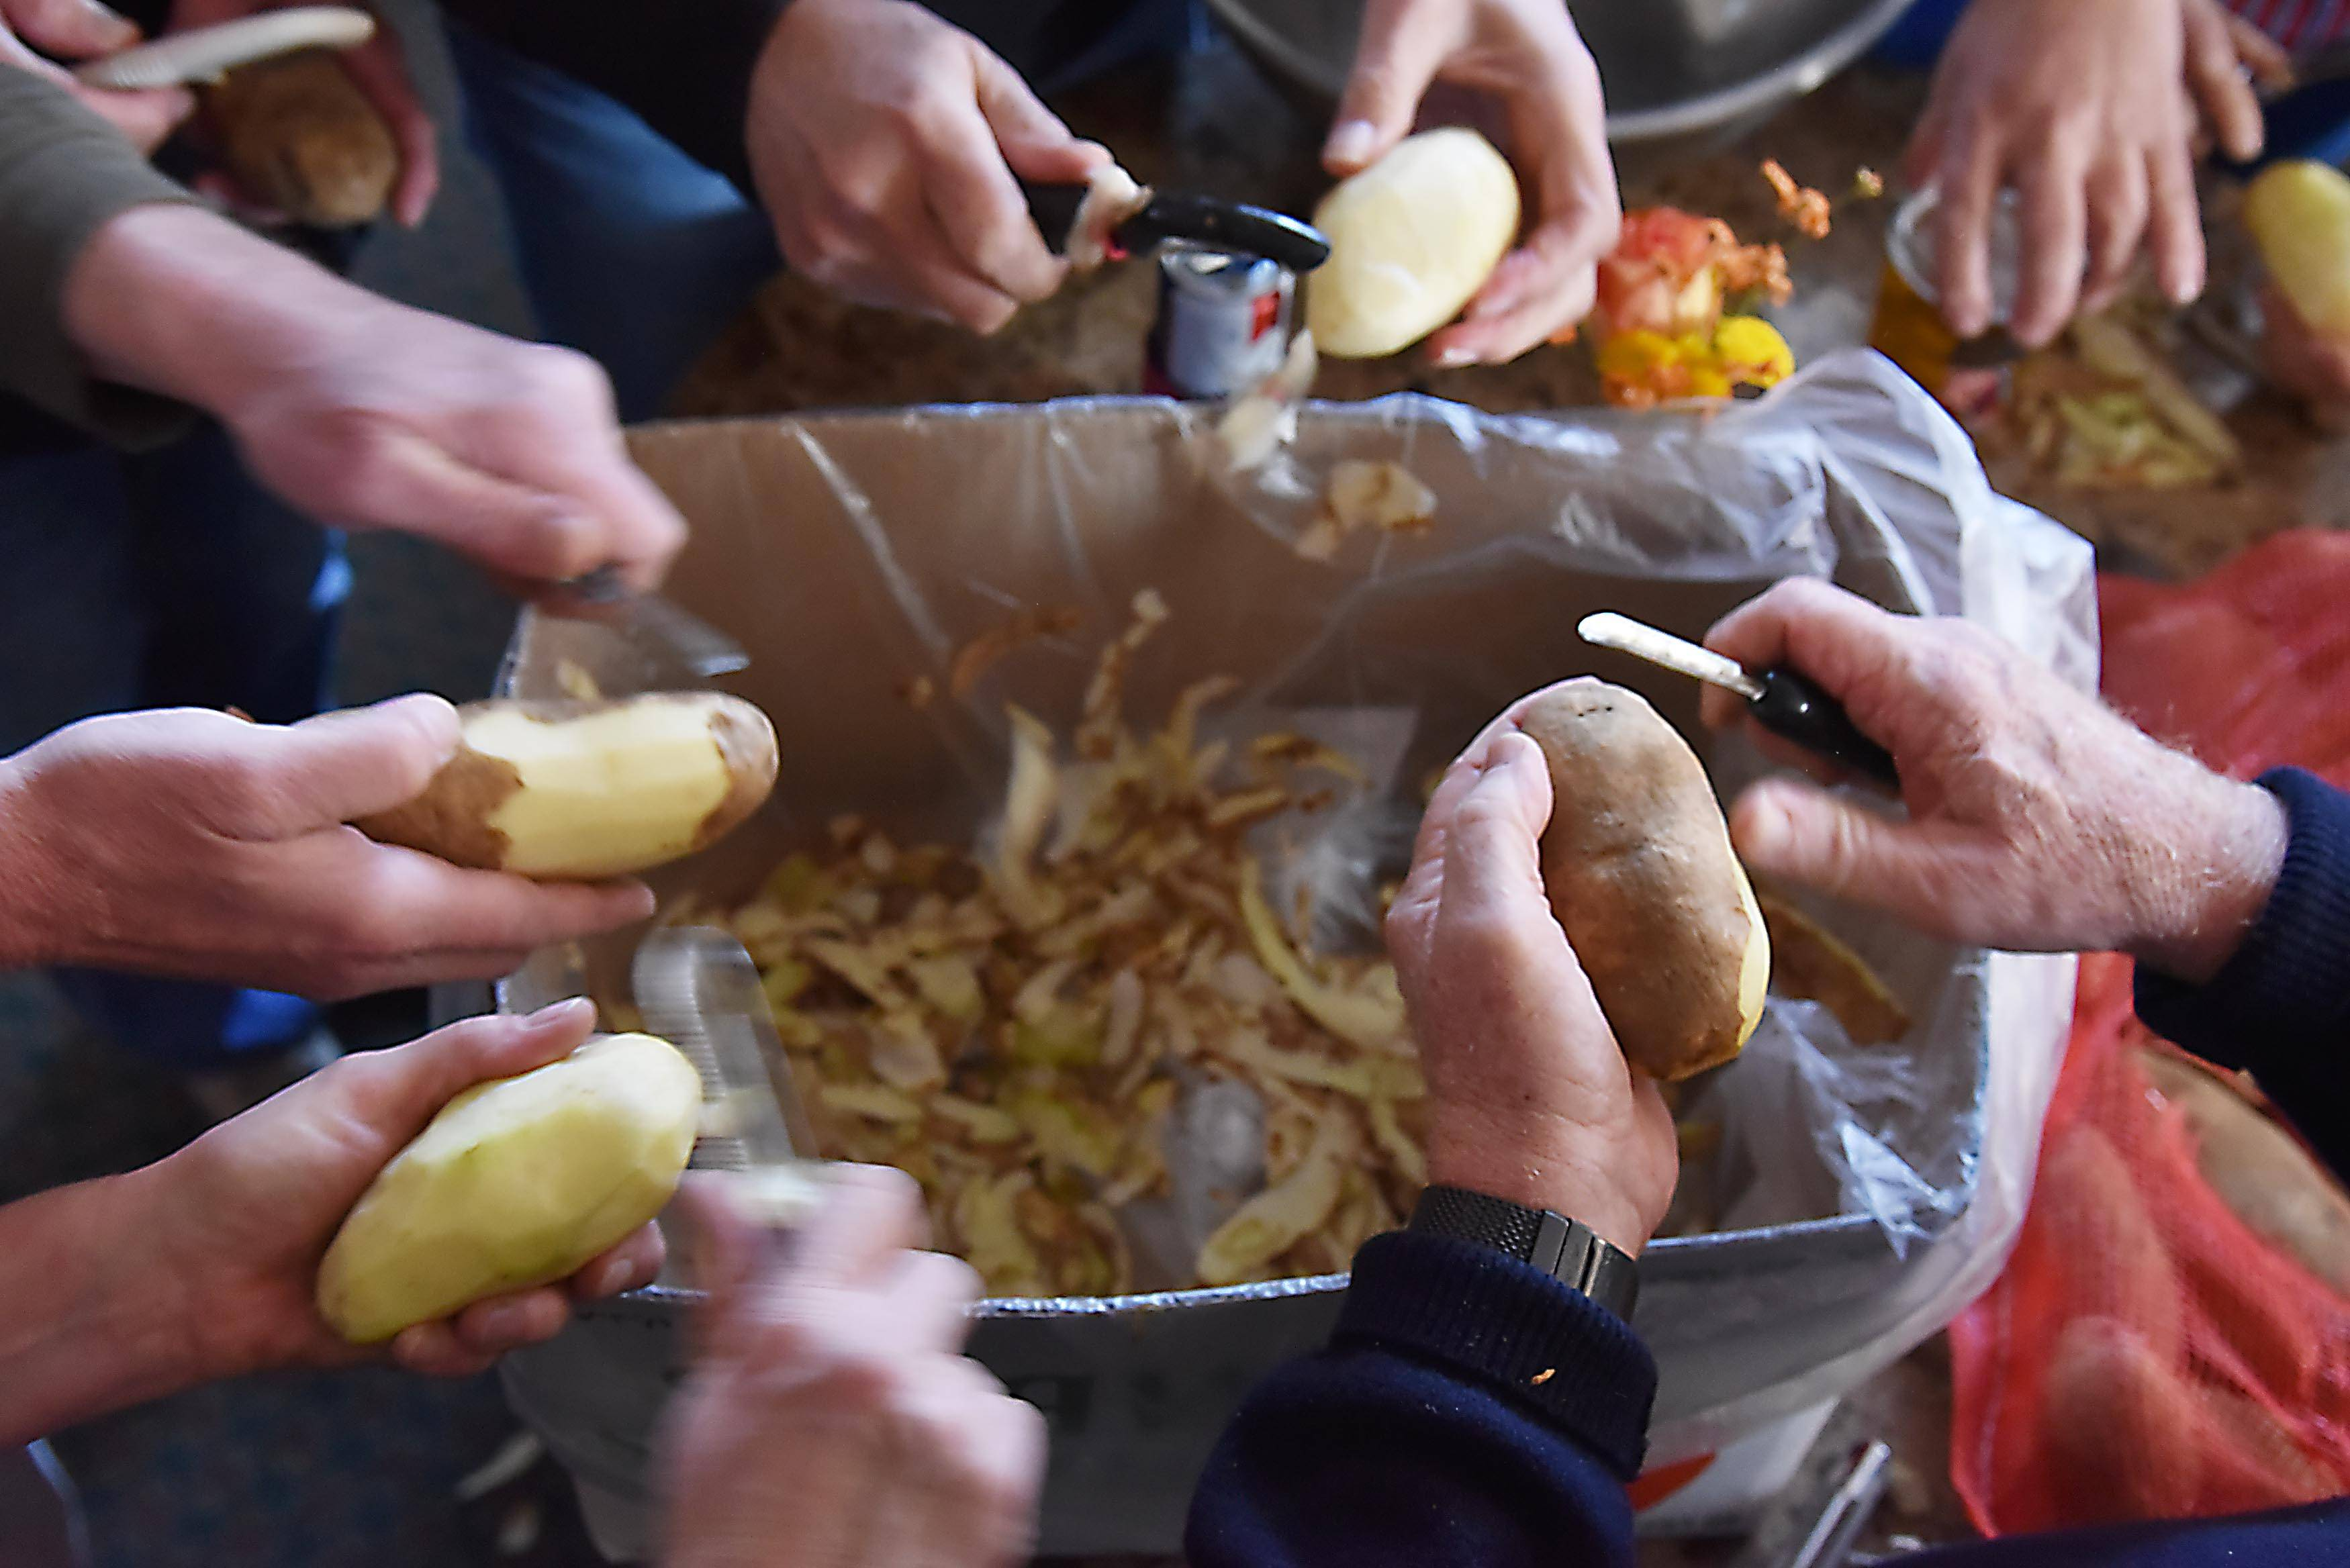 Volunteers peel hundreds of pounds of potatoes Tuesday at Barrington's Blue Heron Cafe before delivery of Thanksgiving meals to those in need in the area.